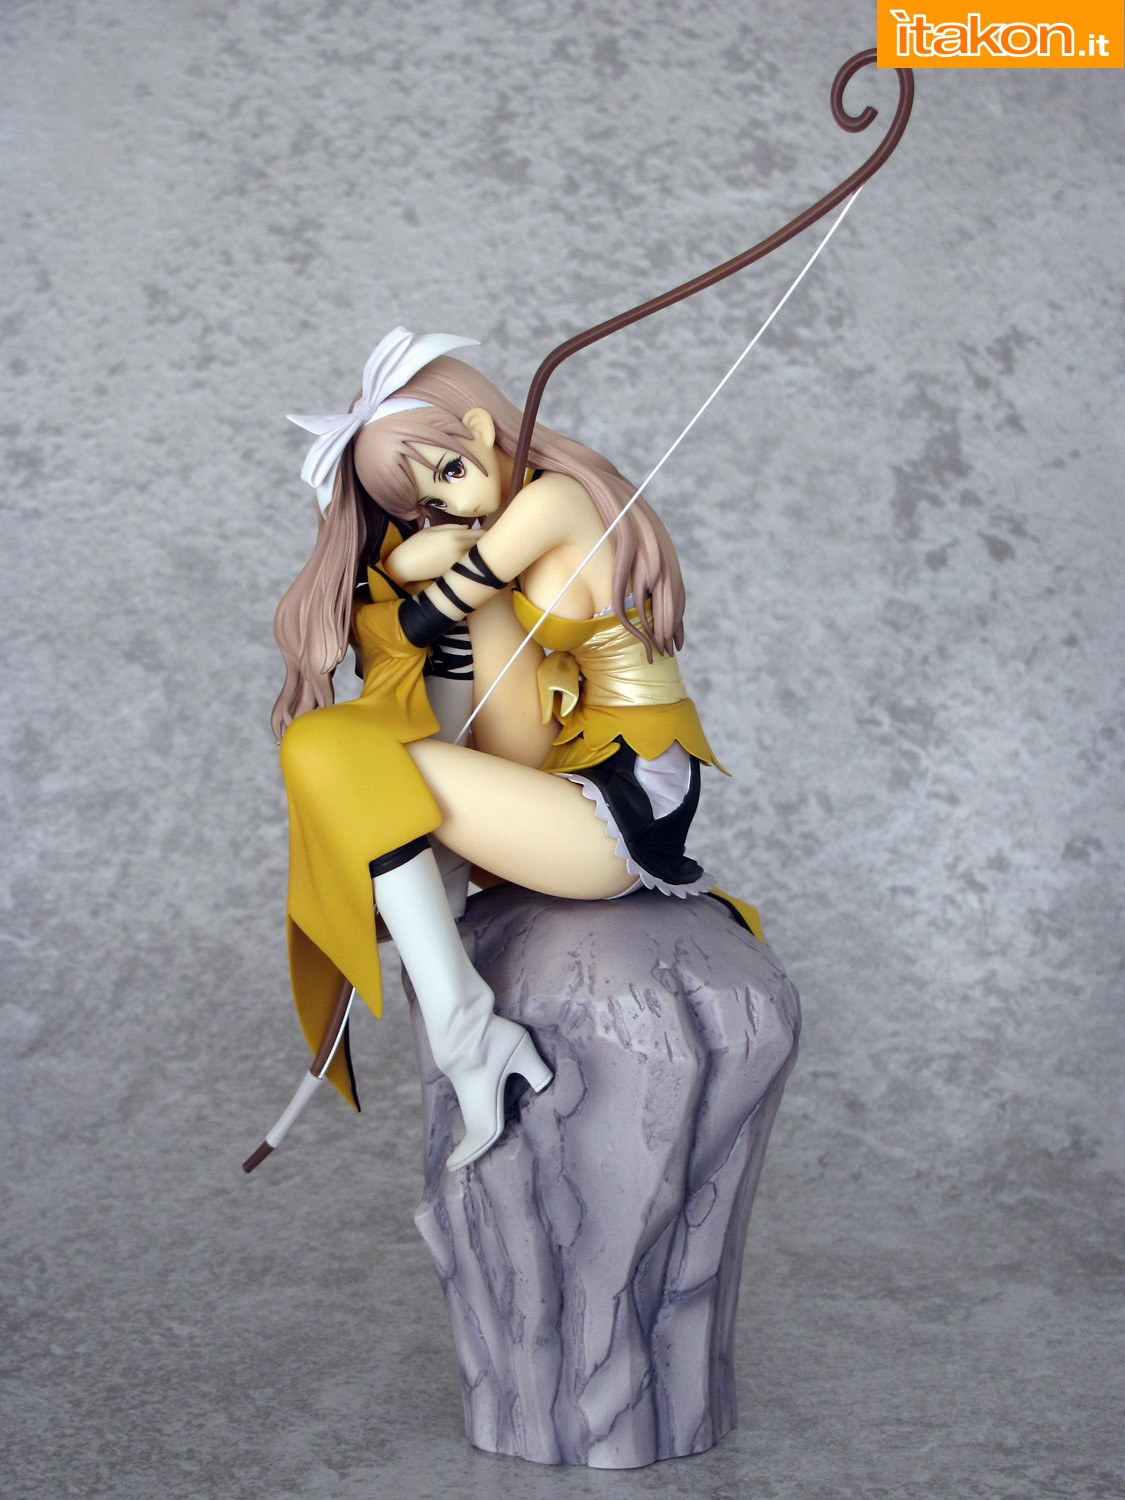 Link a 005 Kureha Shining Wind Orchid Seed Recensione